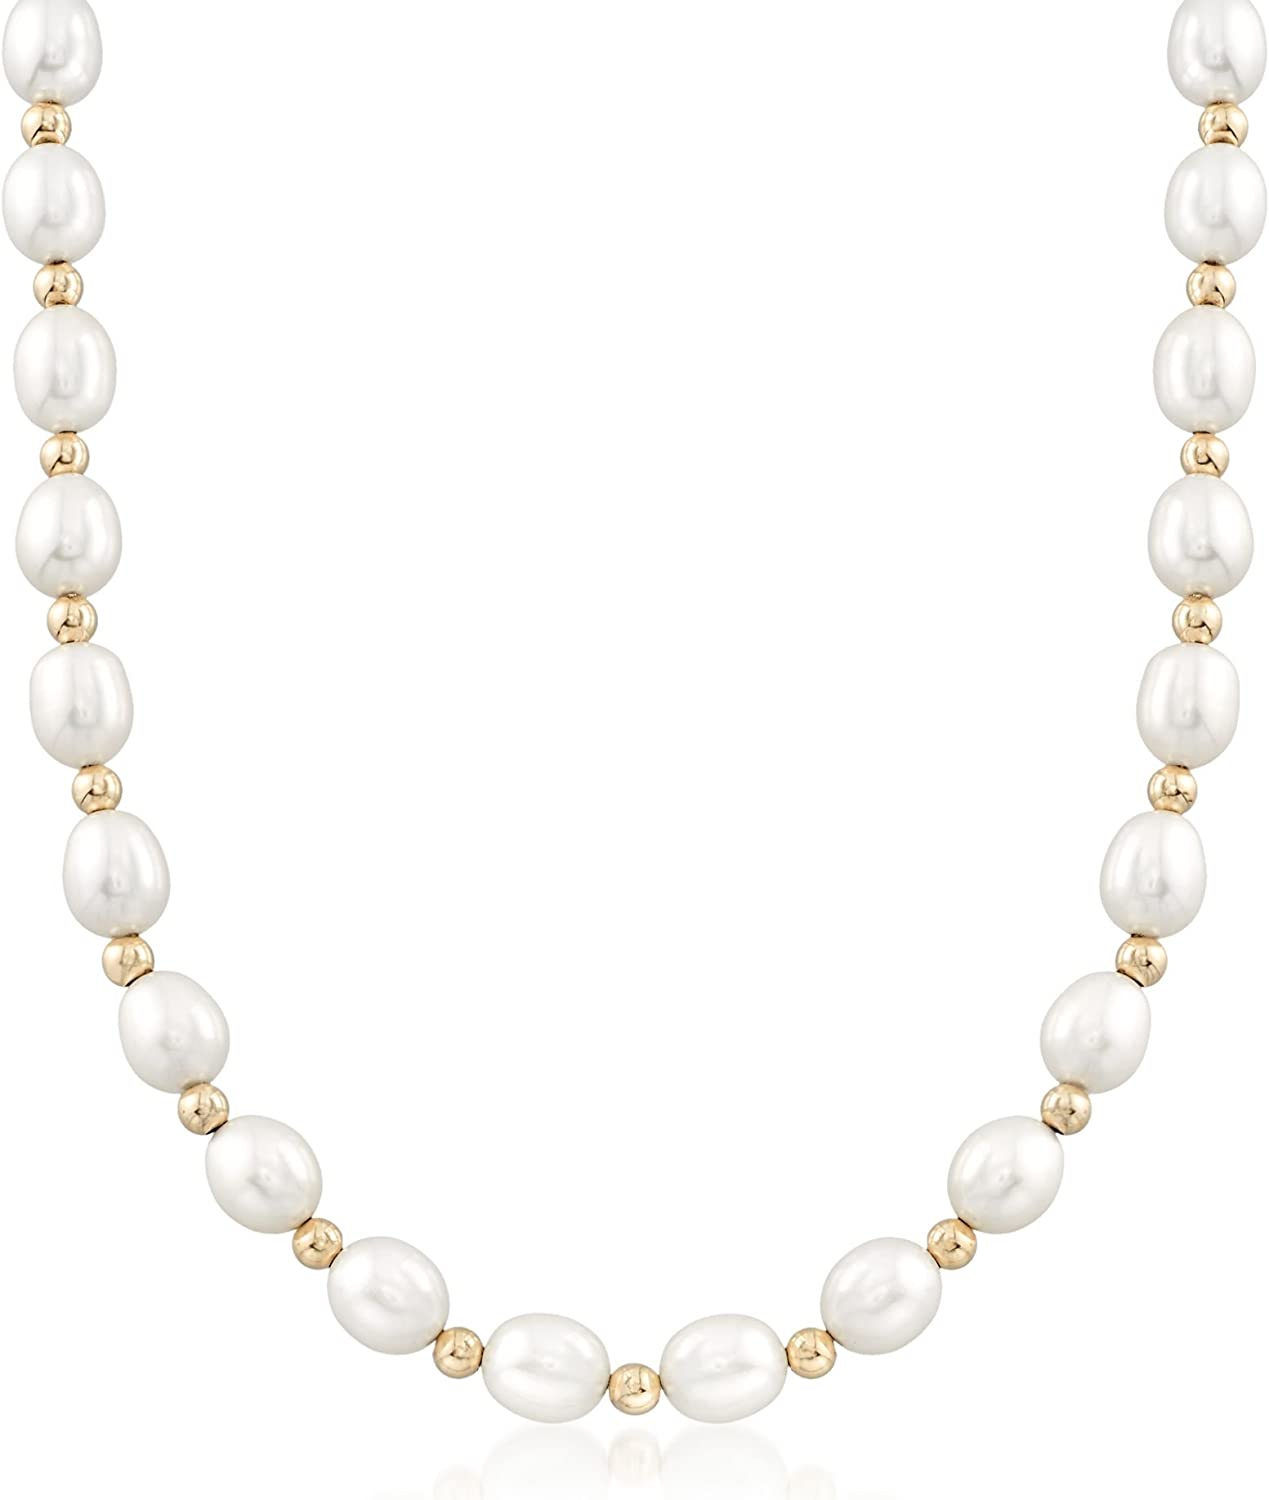 Ross-Simons 8-9mm Cultured Oval Pearl Necklace With 14kt Yellow Gold